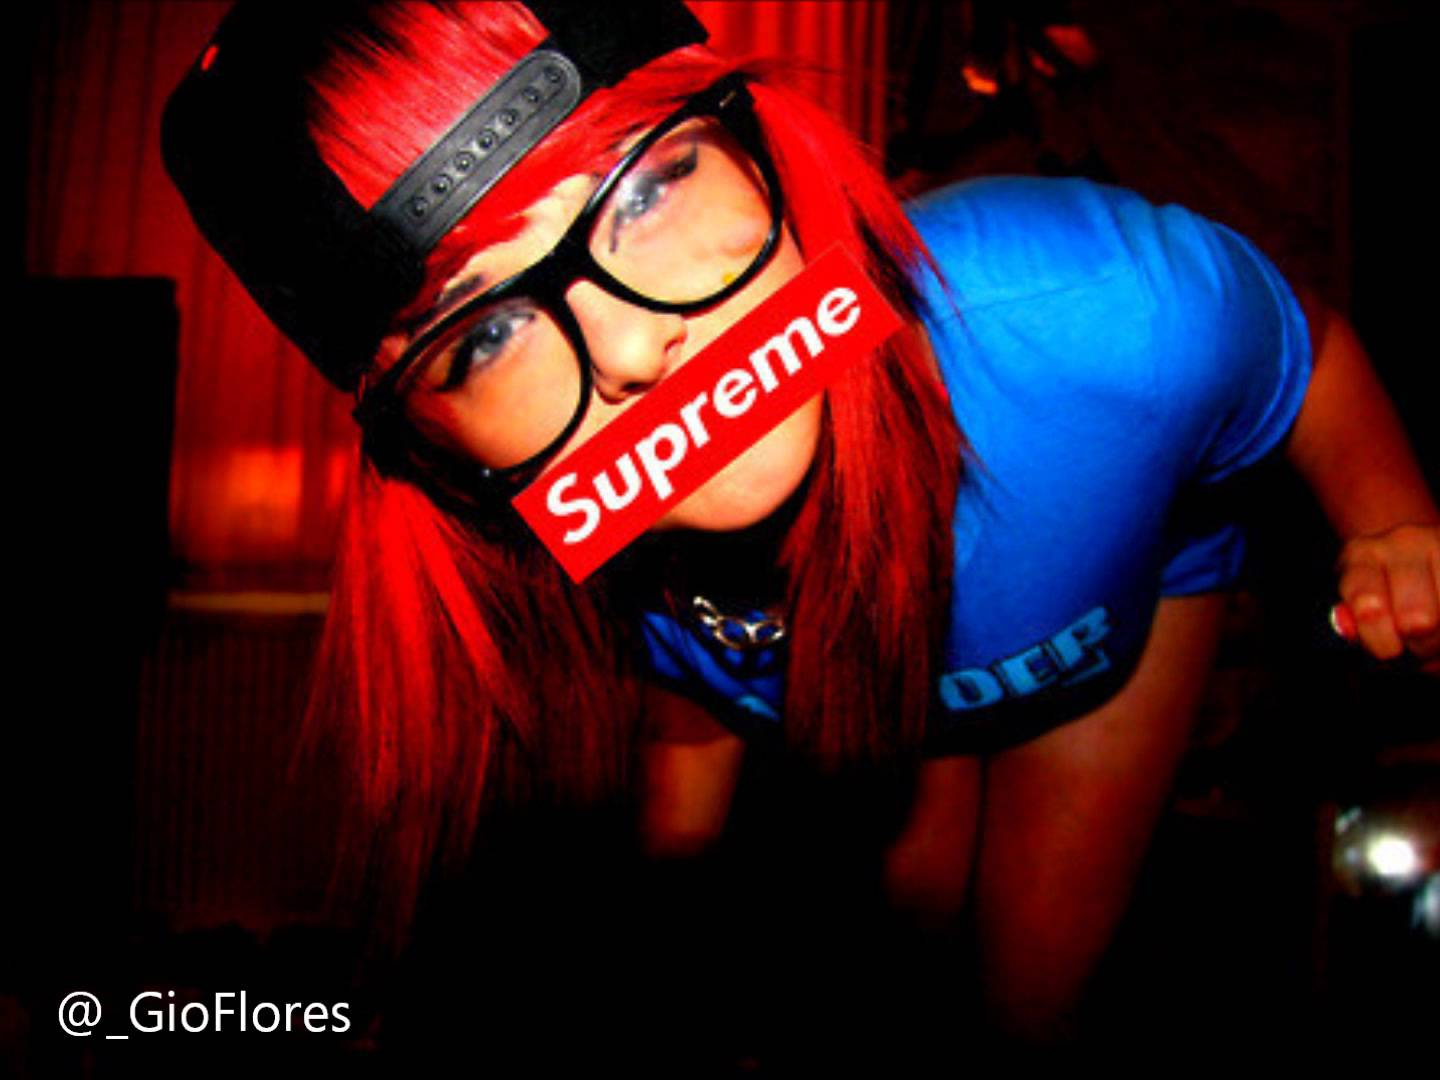 Download Supreme Girl Wallpaper 59   Wallpaper For your 1440x1080